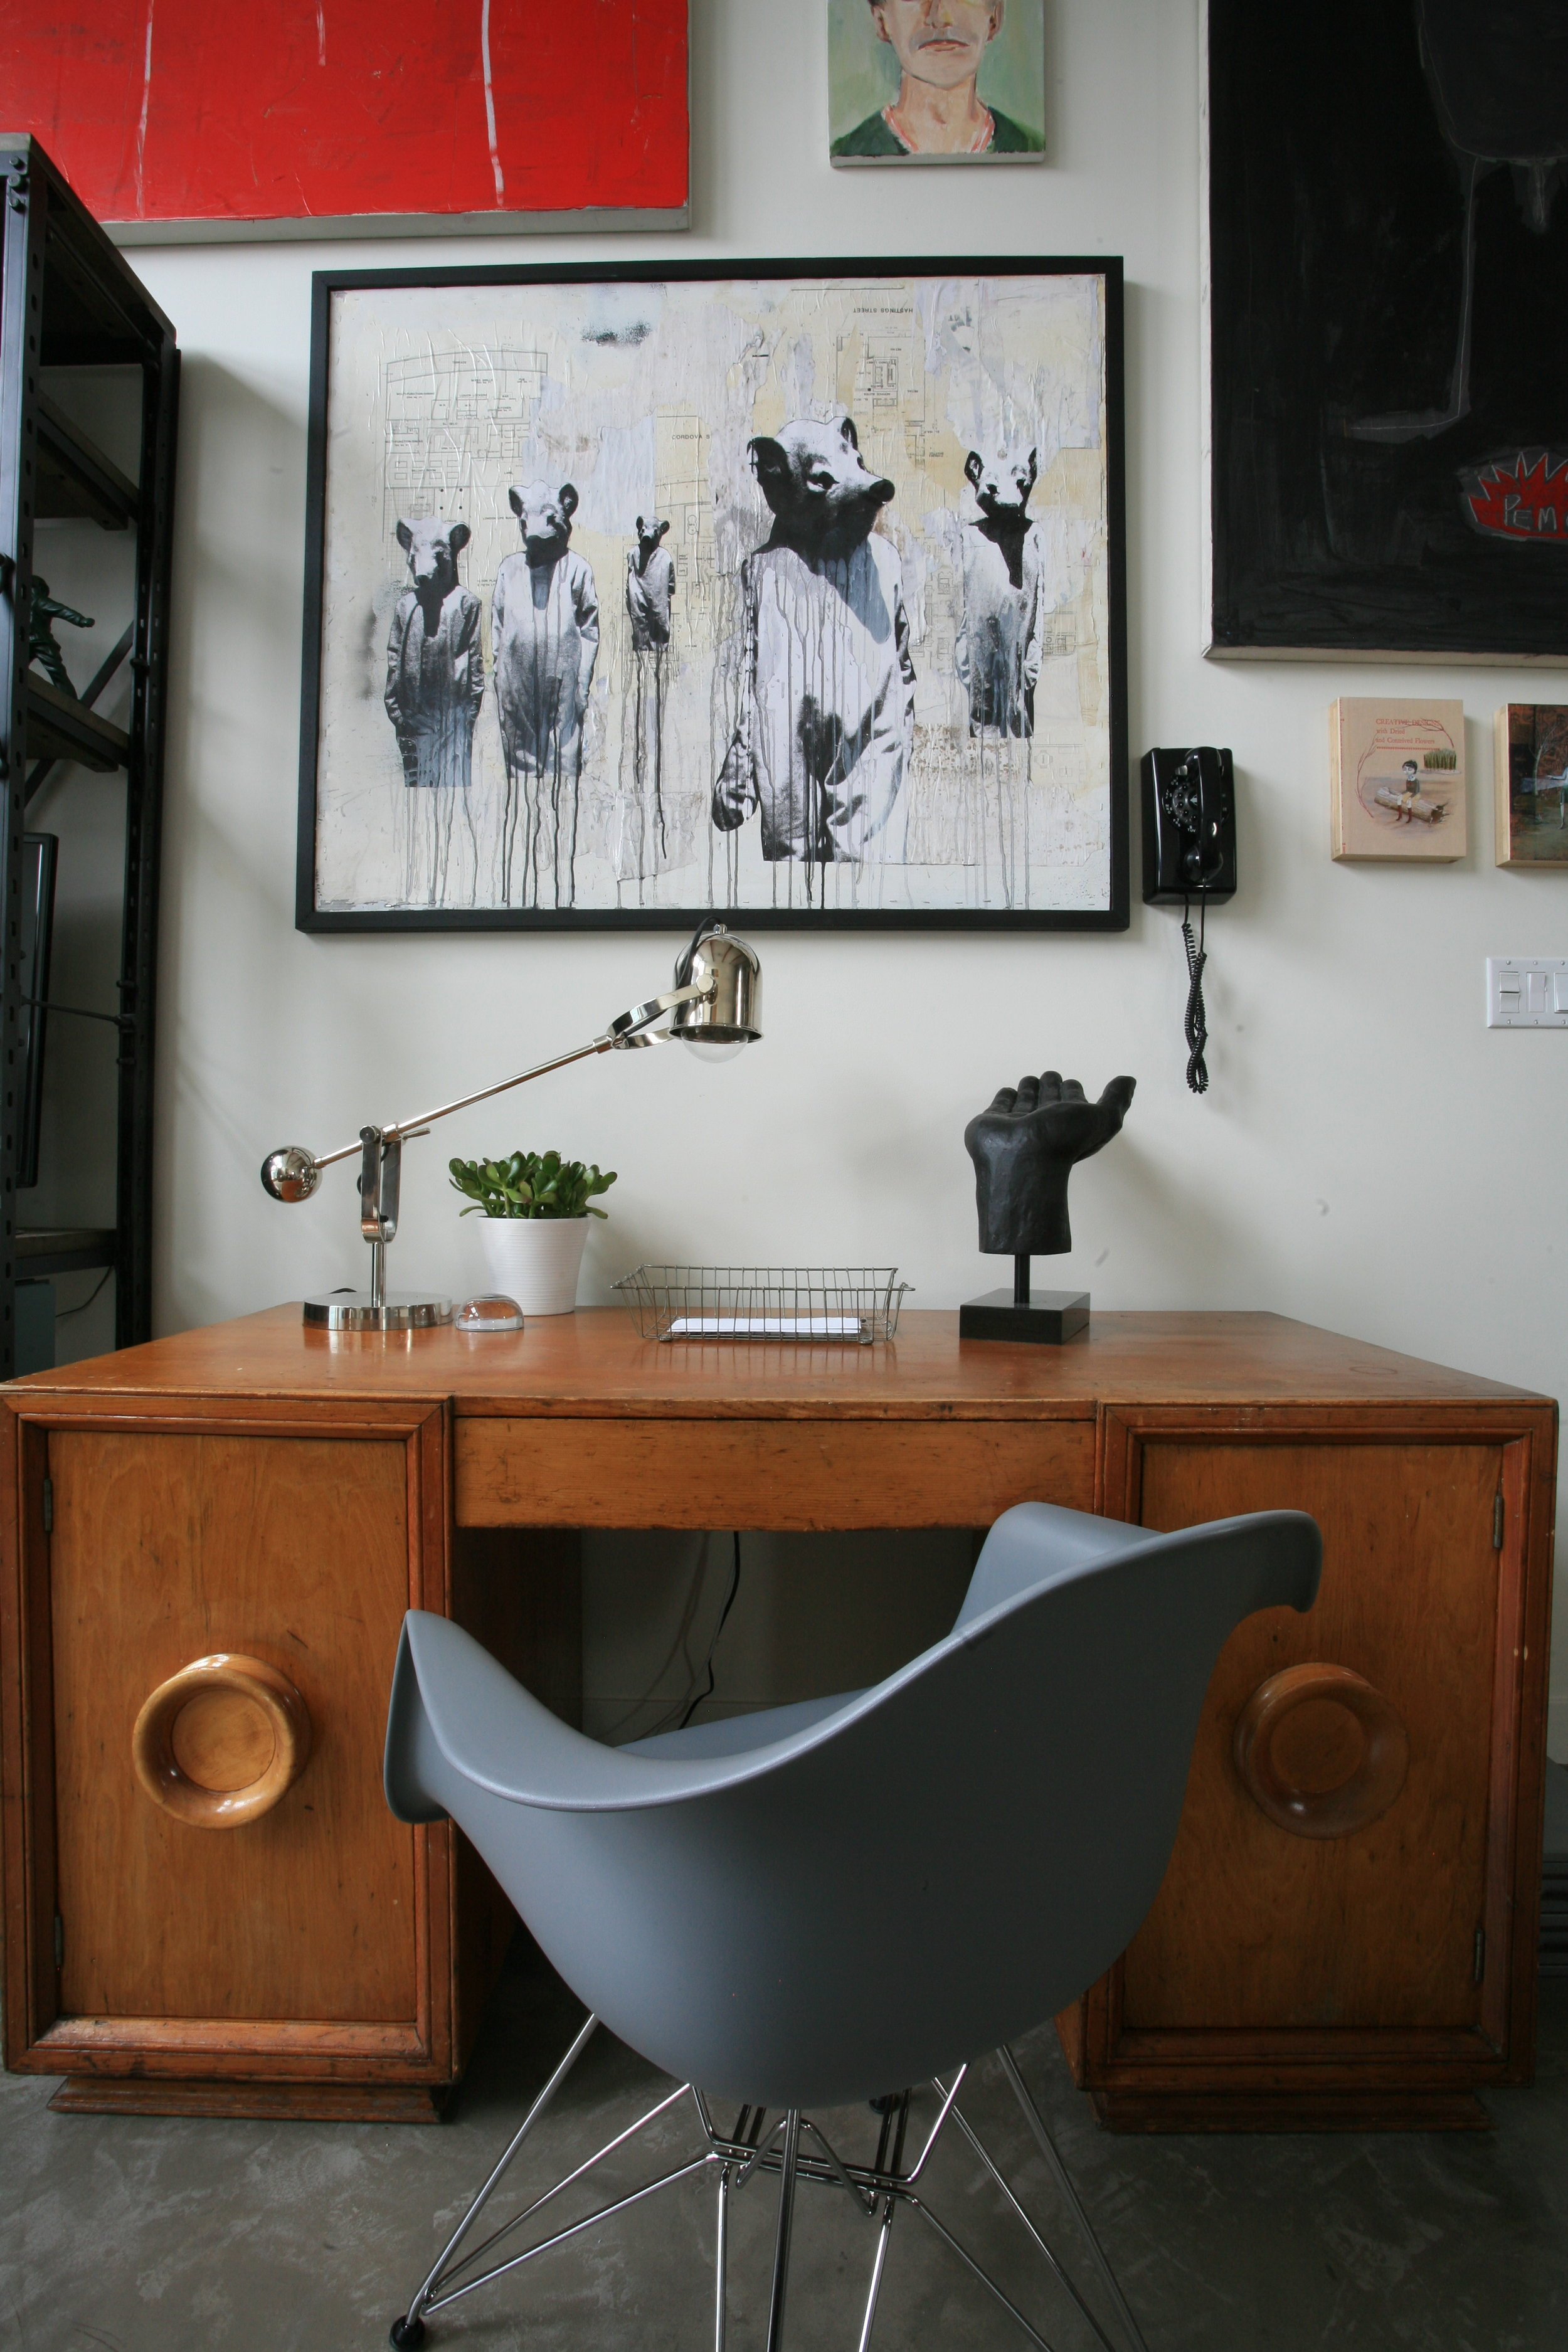 A collage of paintings and an old-timey phone hangs on the wall and an antique wooden desk with a mid-century style desk chair sit below the paintings. There are some items on the desk, including a silver lamp, a basket for letters and a statuette shaped like an open palm.